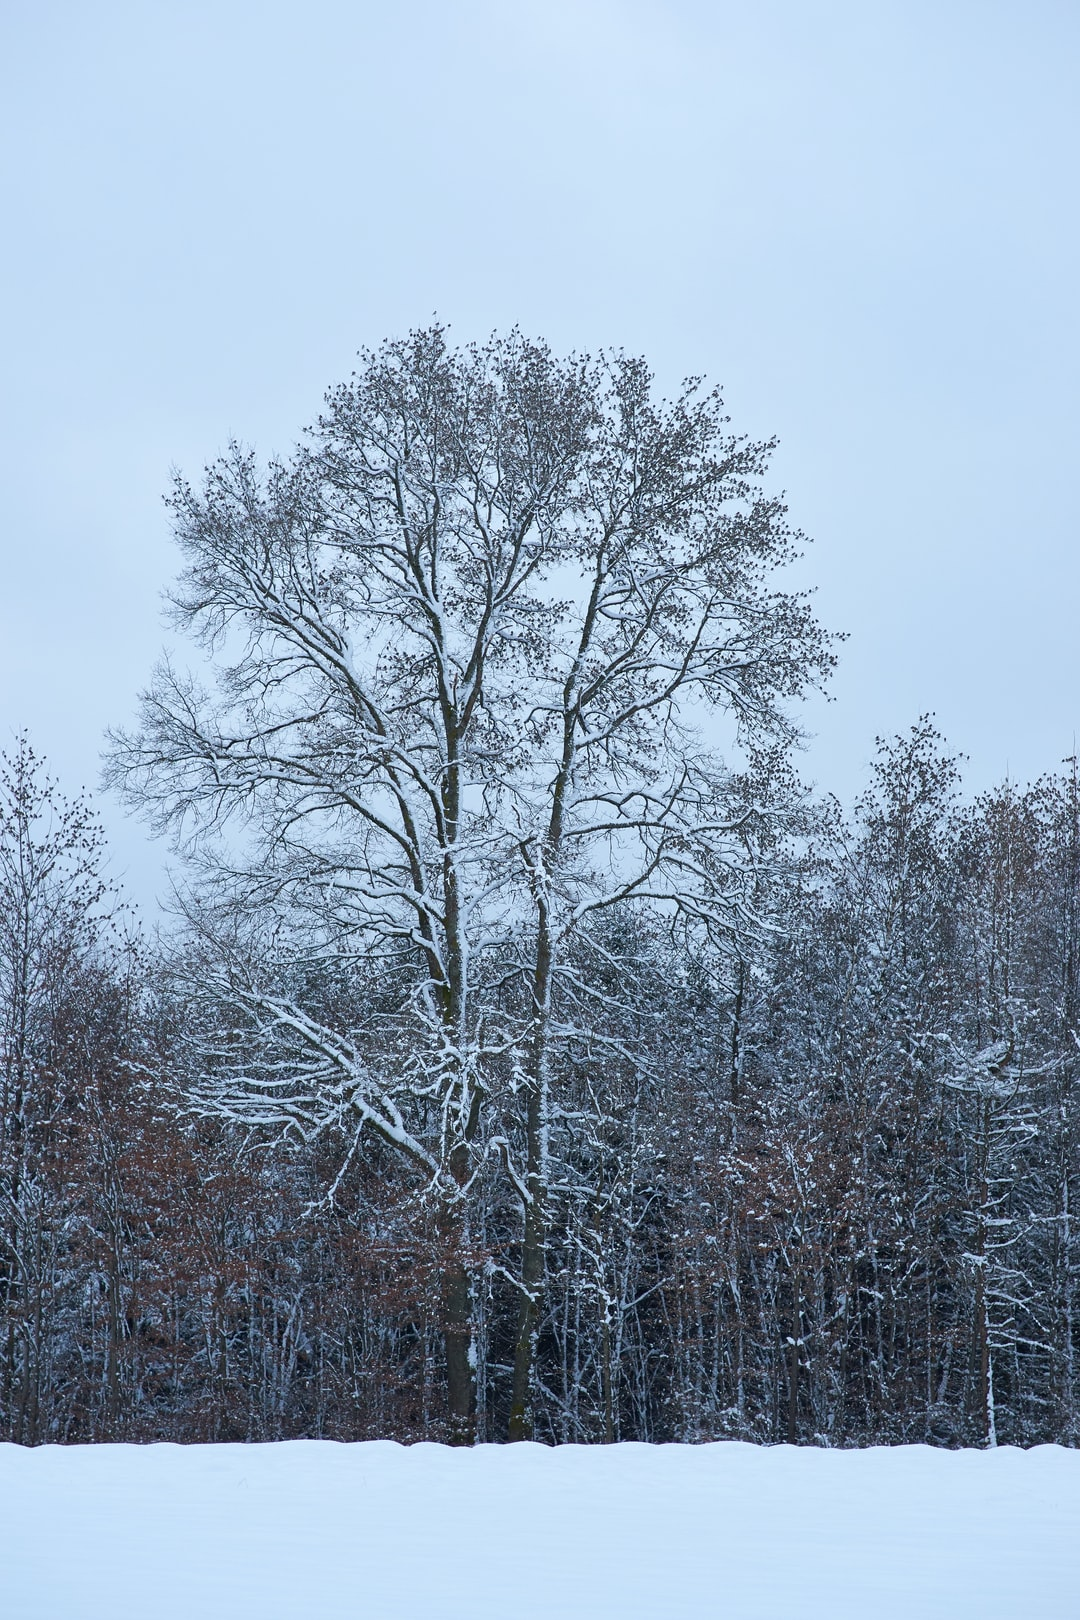 This is not a normal winter tree the dark spots are no leaf it is full of small birds